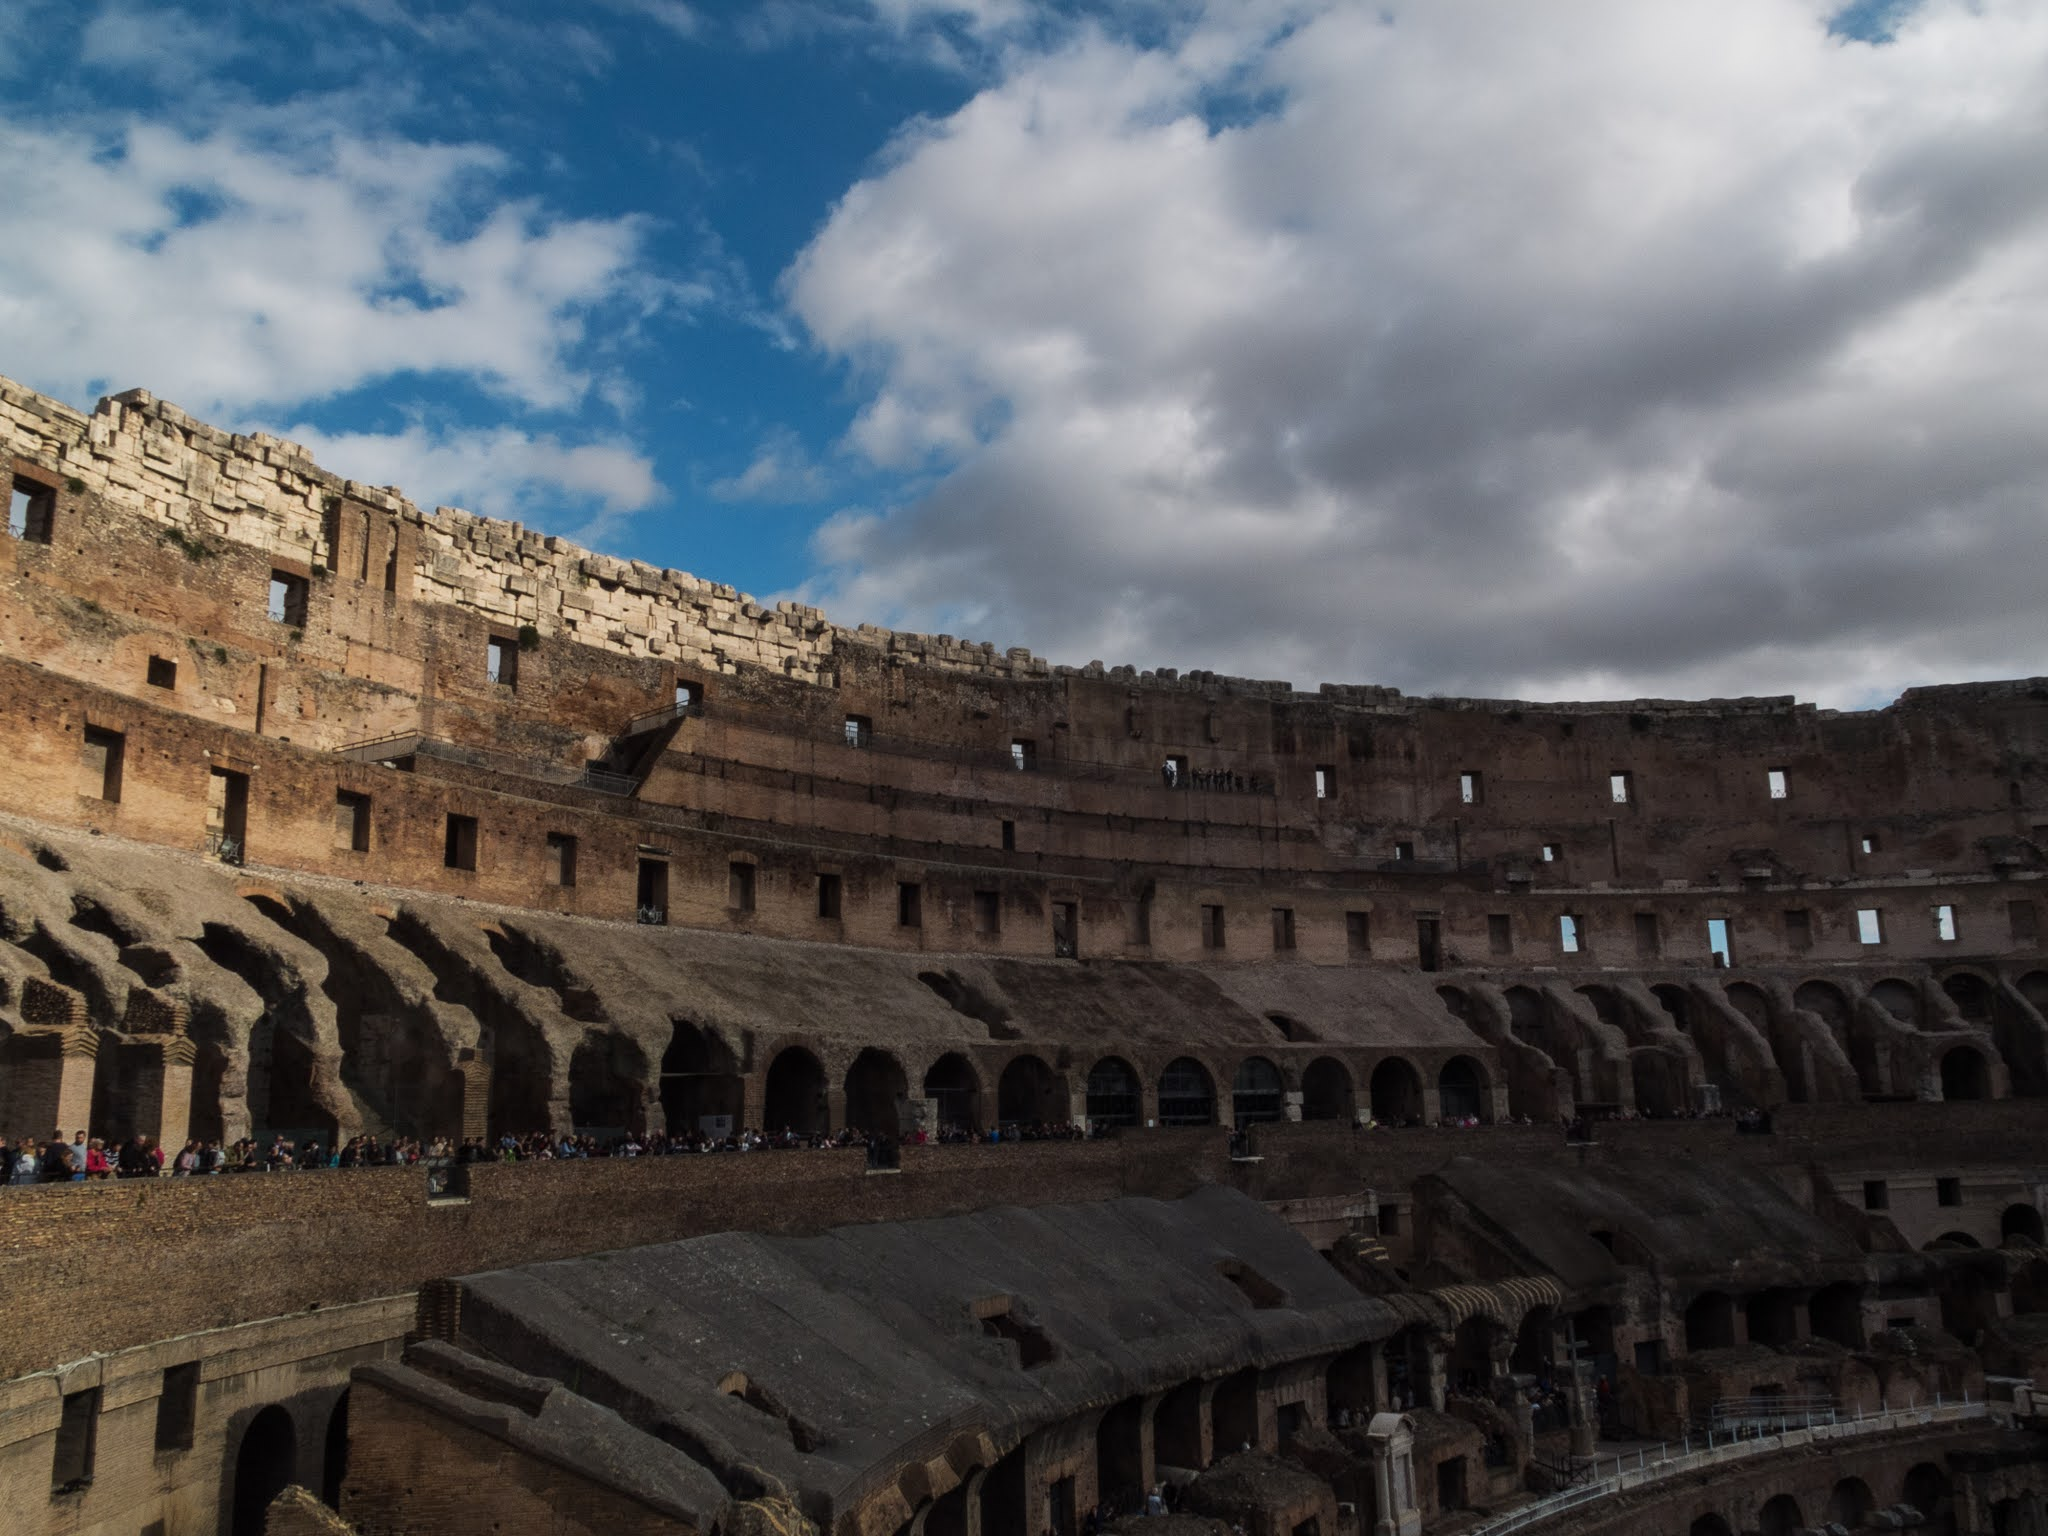 View of the inside of the Colosseum with a blue and cloudy sky above.